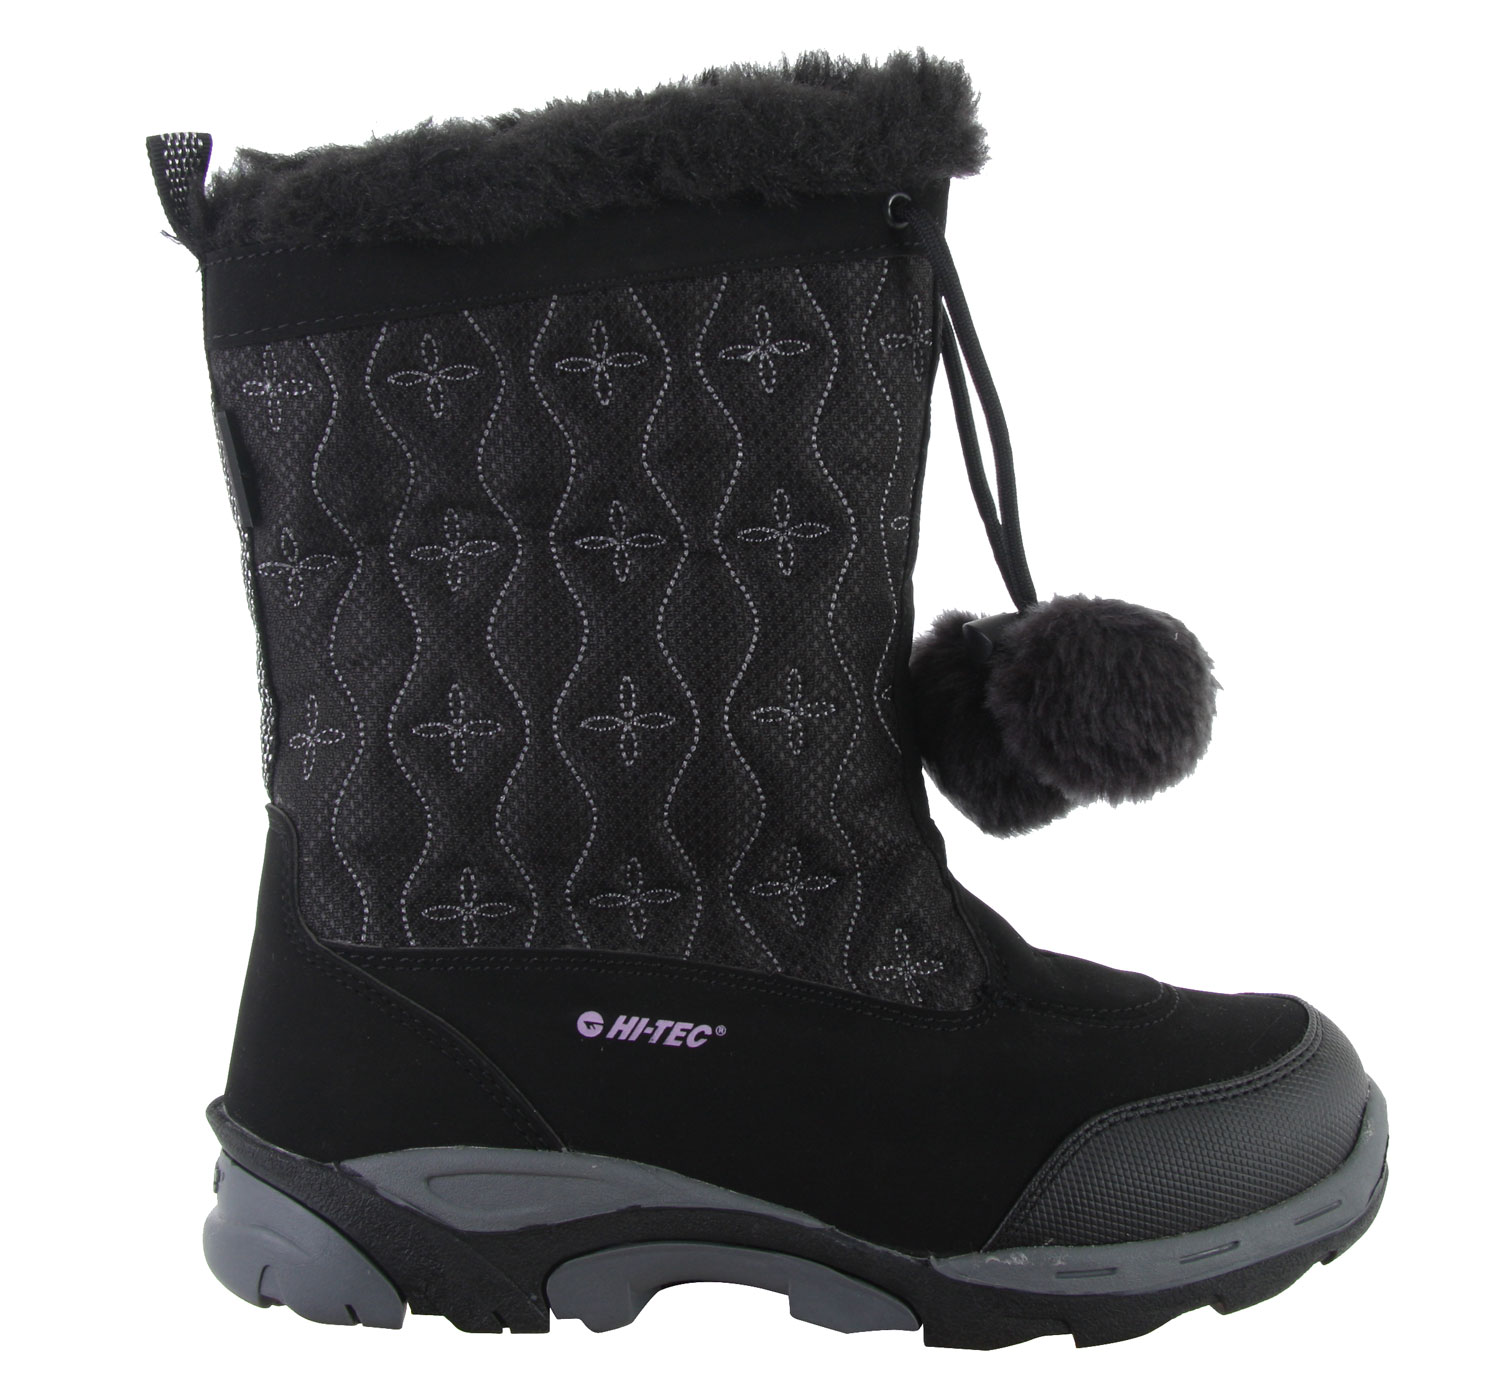 For a winter season filled with ice and snow, a pair of snow boots is a must have in everyone's wardrobe. The Hitec Snowdonia 200 Casual Boots offers a sleek design with features that'll assure satisfaction. Its waterproof material is ideal to lock out any moisture from the snow. The faux shearling lining adds a touch of warmth while the rubber soles add traction to keep from falling on the snow. This is a must have. It's ideal to wear out in the snow or to an active trip up to the mountains.Key Features of the Hitec Snowdonia 200 Casual Boots: Waterproof Synthetic Nubuck And Mesh Upper Thermo-Dri@ Waterproof And Insulated Systems Waterproof Bootie Construction Faux Shearling Lining Comfort Tec Contoured Sock Liner Board Lasted With Steel Shank For Added Rigidity Winter Traction, Rubber Outsole Design - $47.95